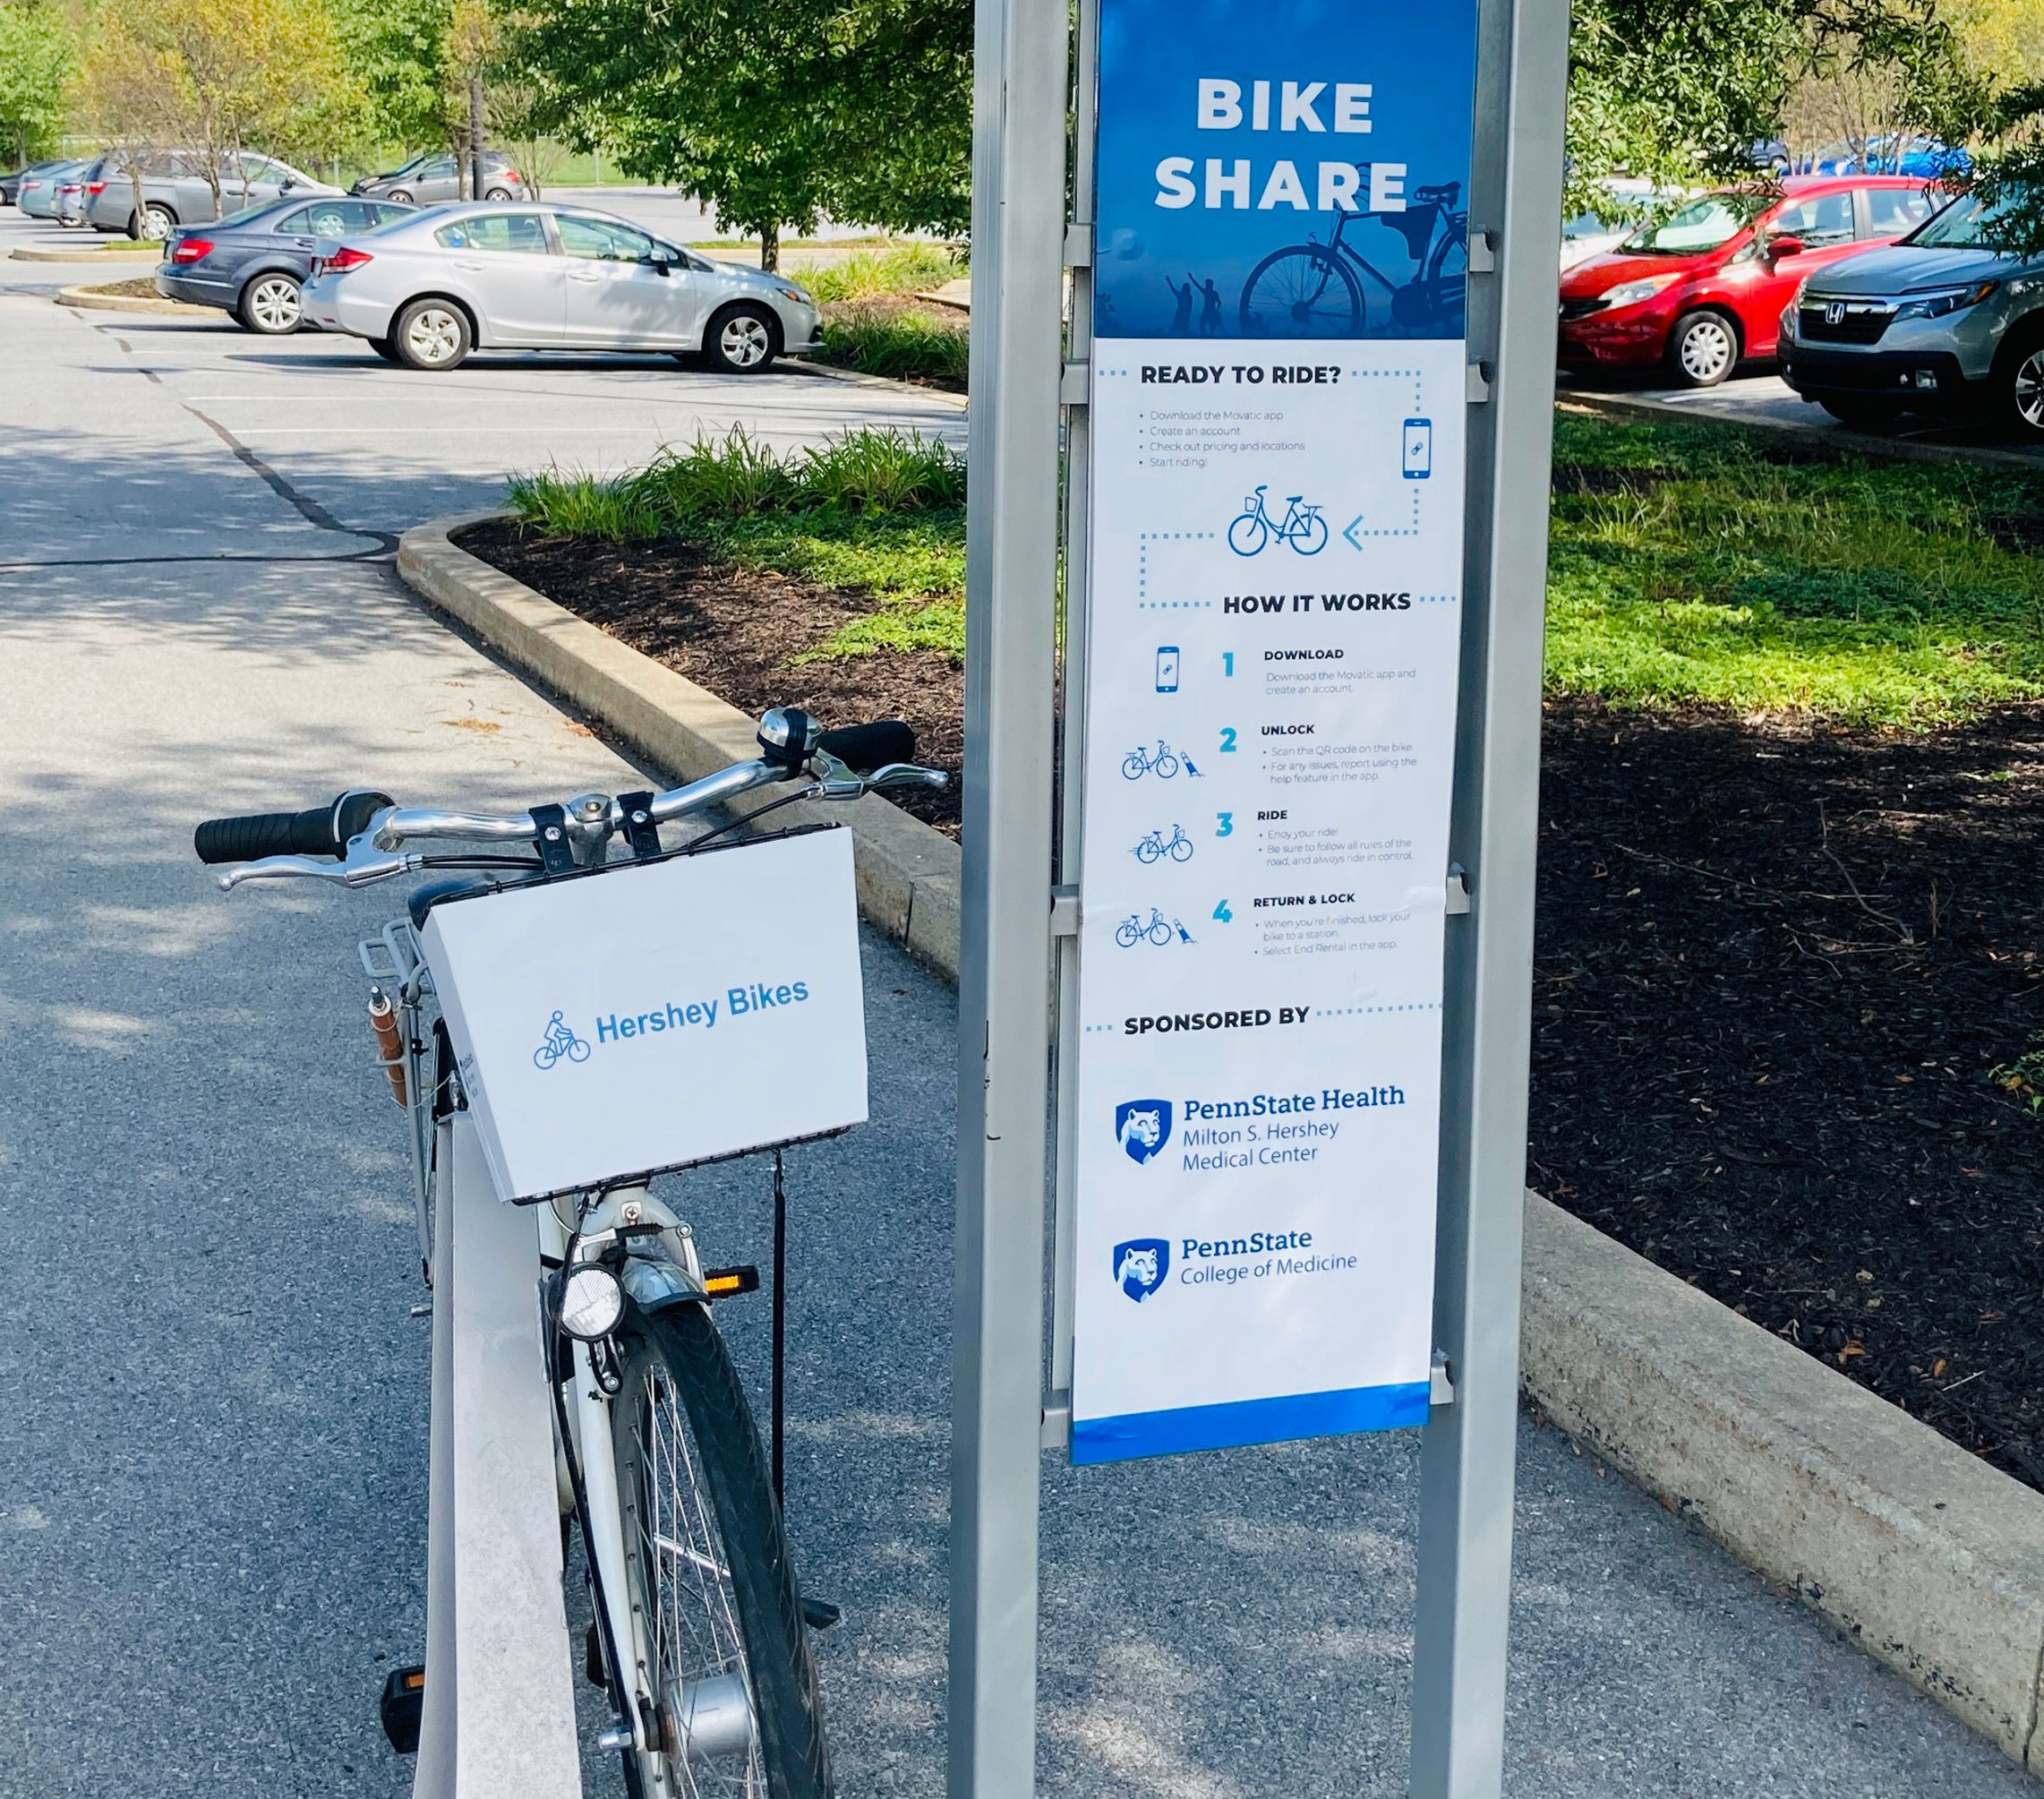 A bicycle is seen on a rack next to a sign describing the bike share program.